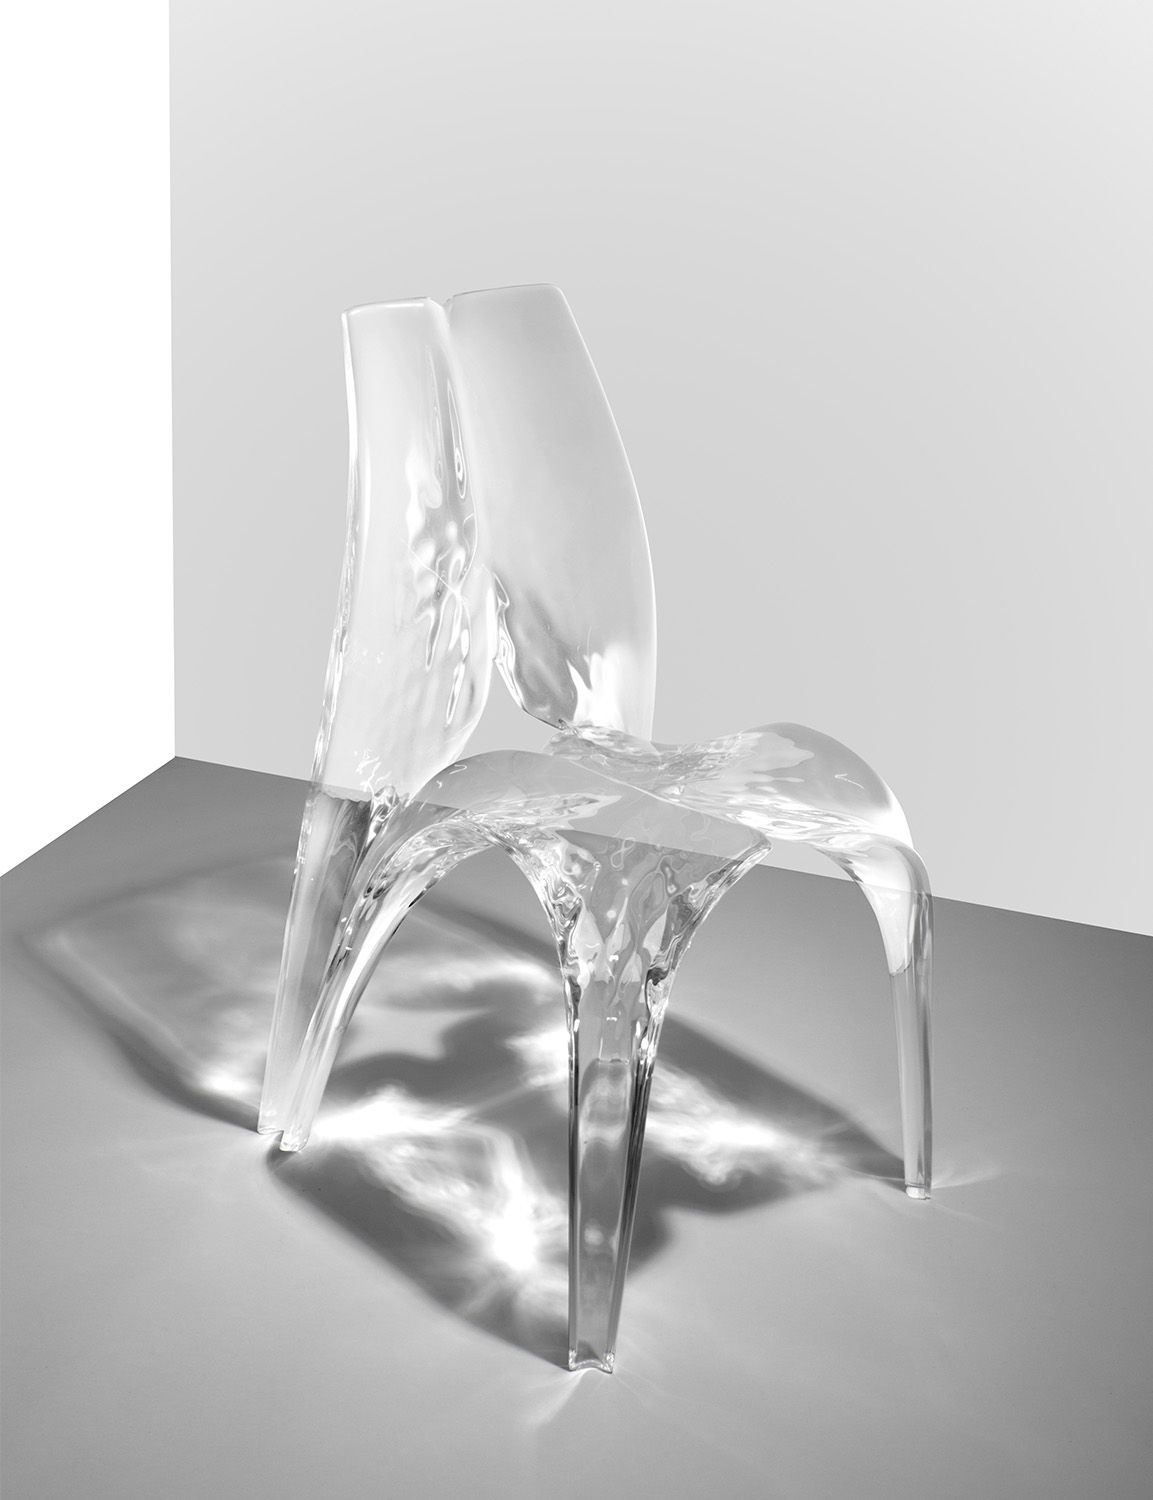 Liquid Glacial Chair By Zaha Hadid.